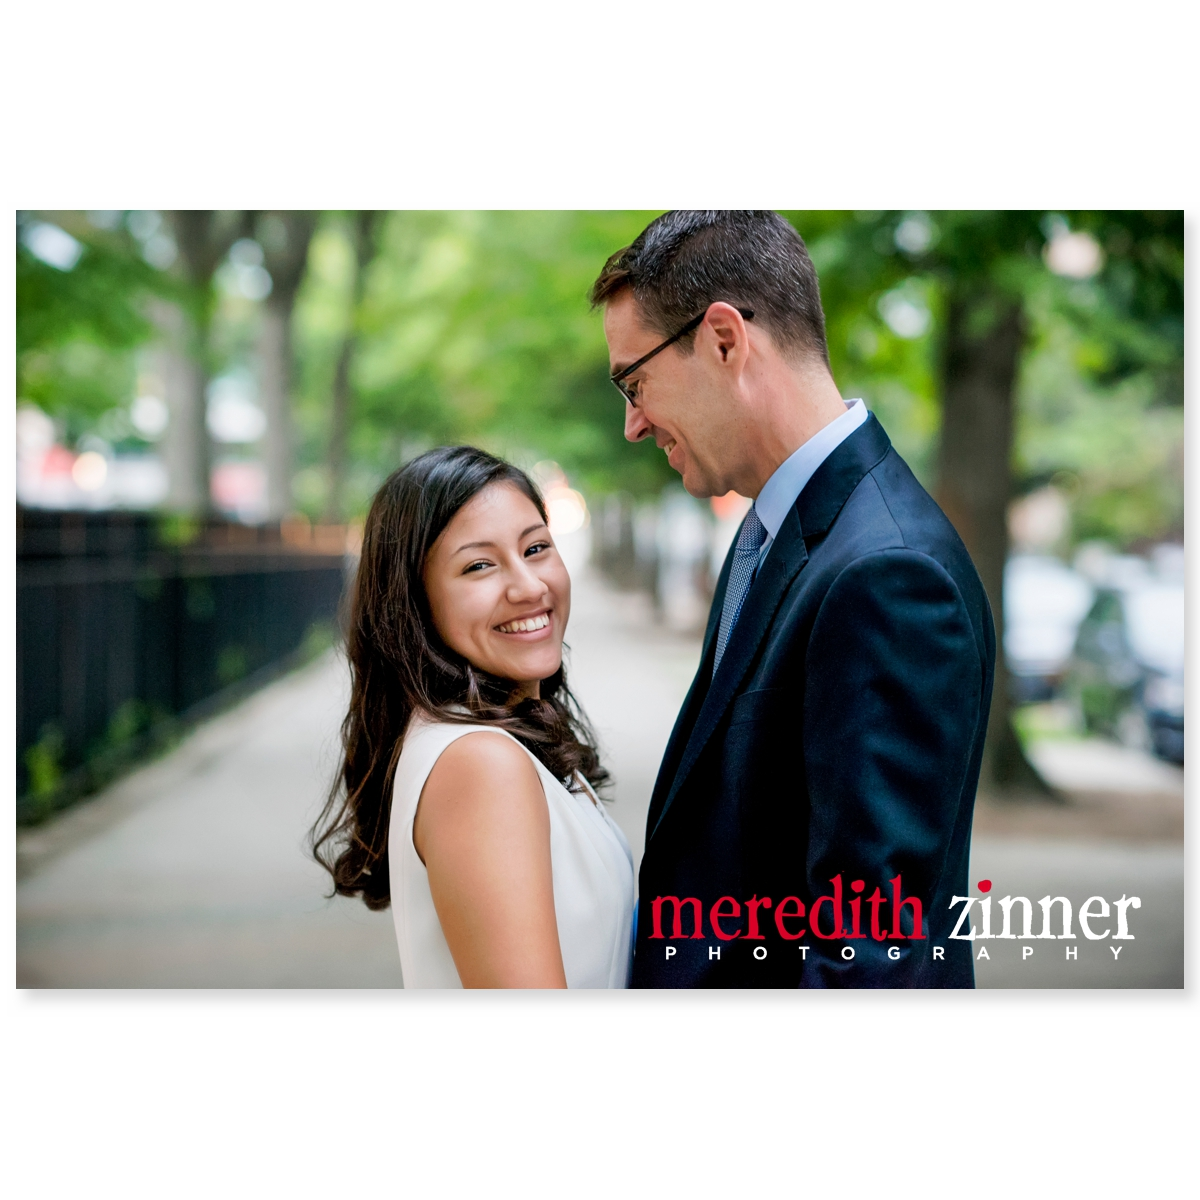 Meredith_Zinner_Photography_StilesCelebration_0240